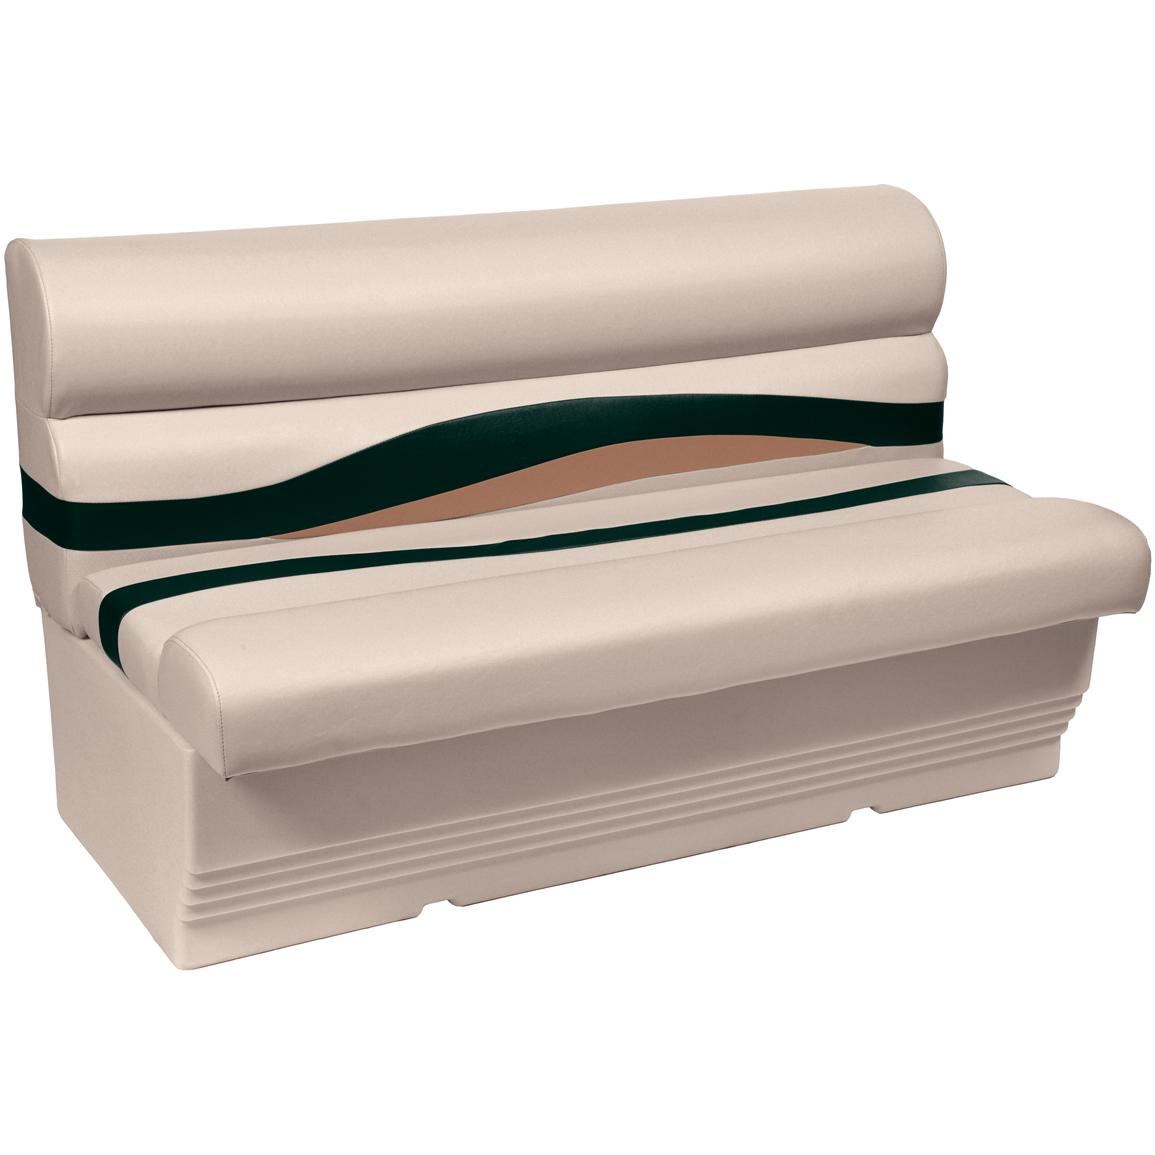 Wise® Premier 1100 Series 50 inch Pontoon Bench Seat, Color B